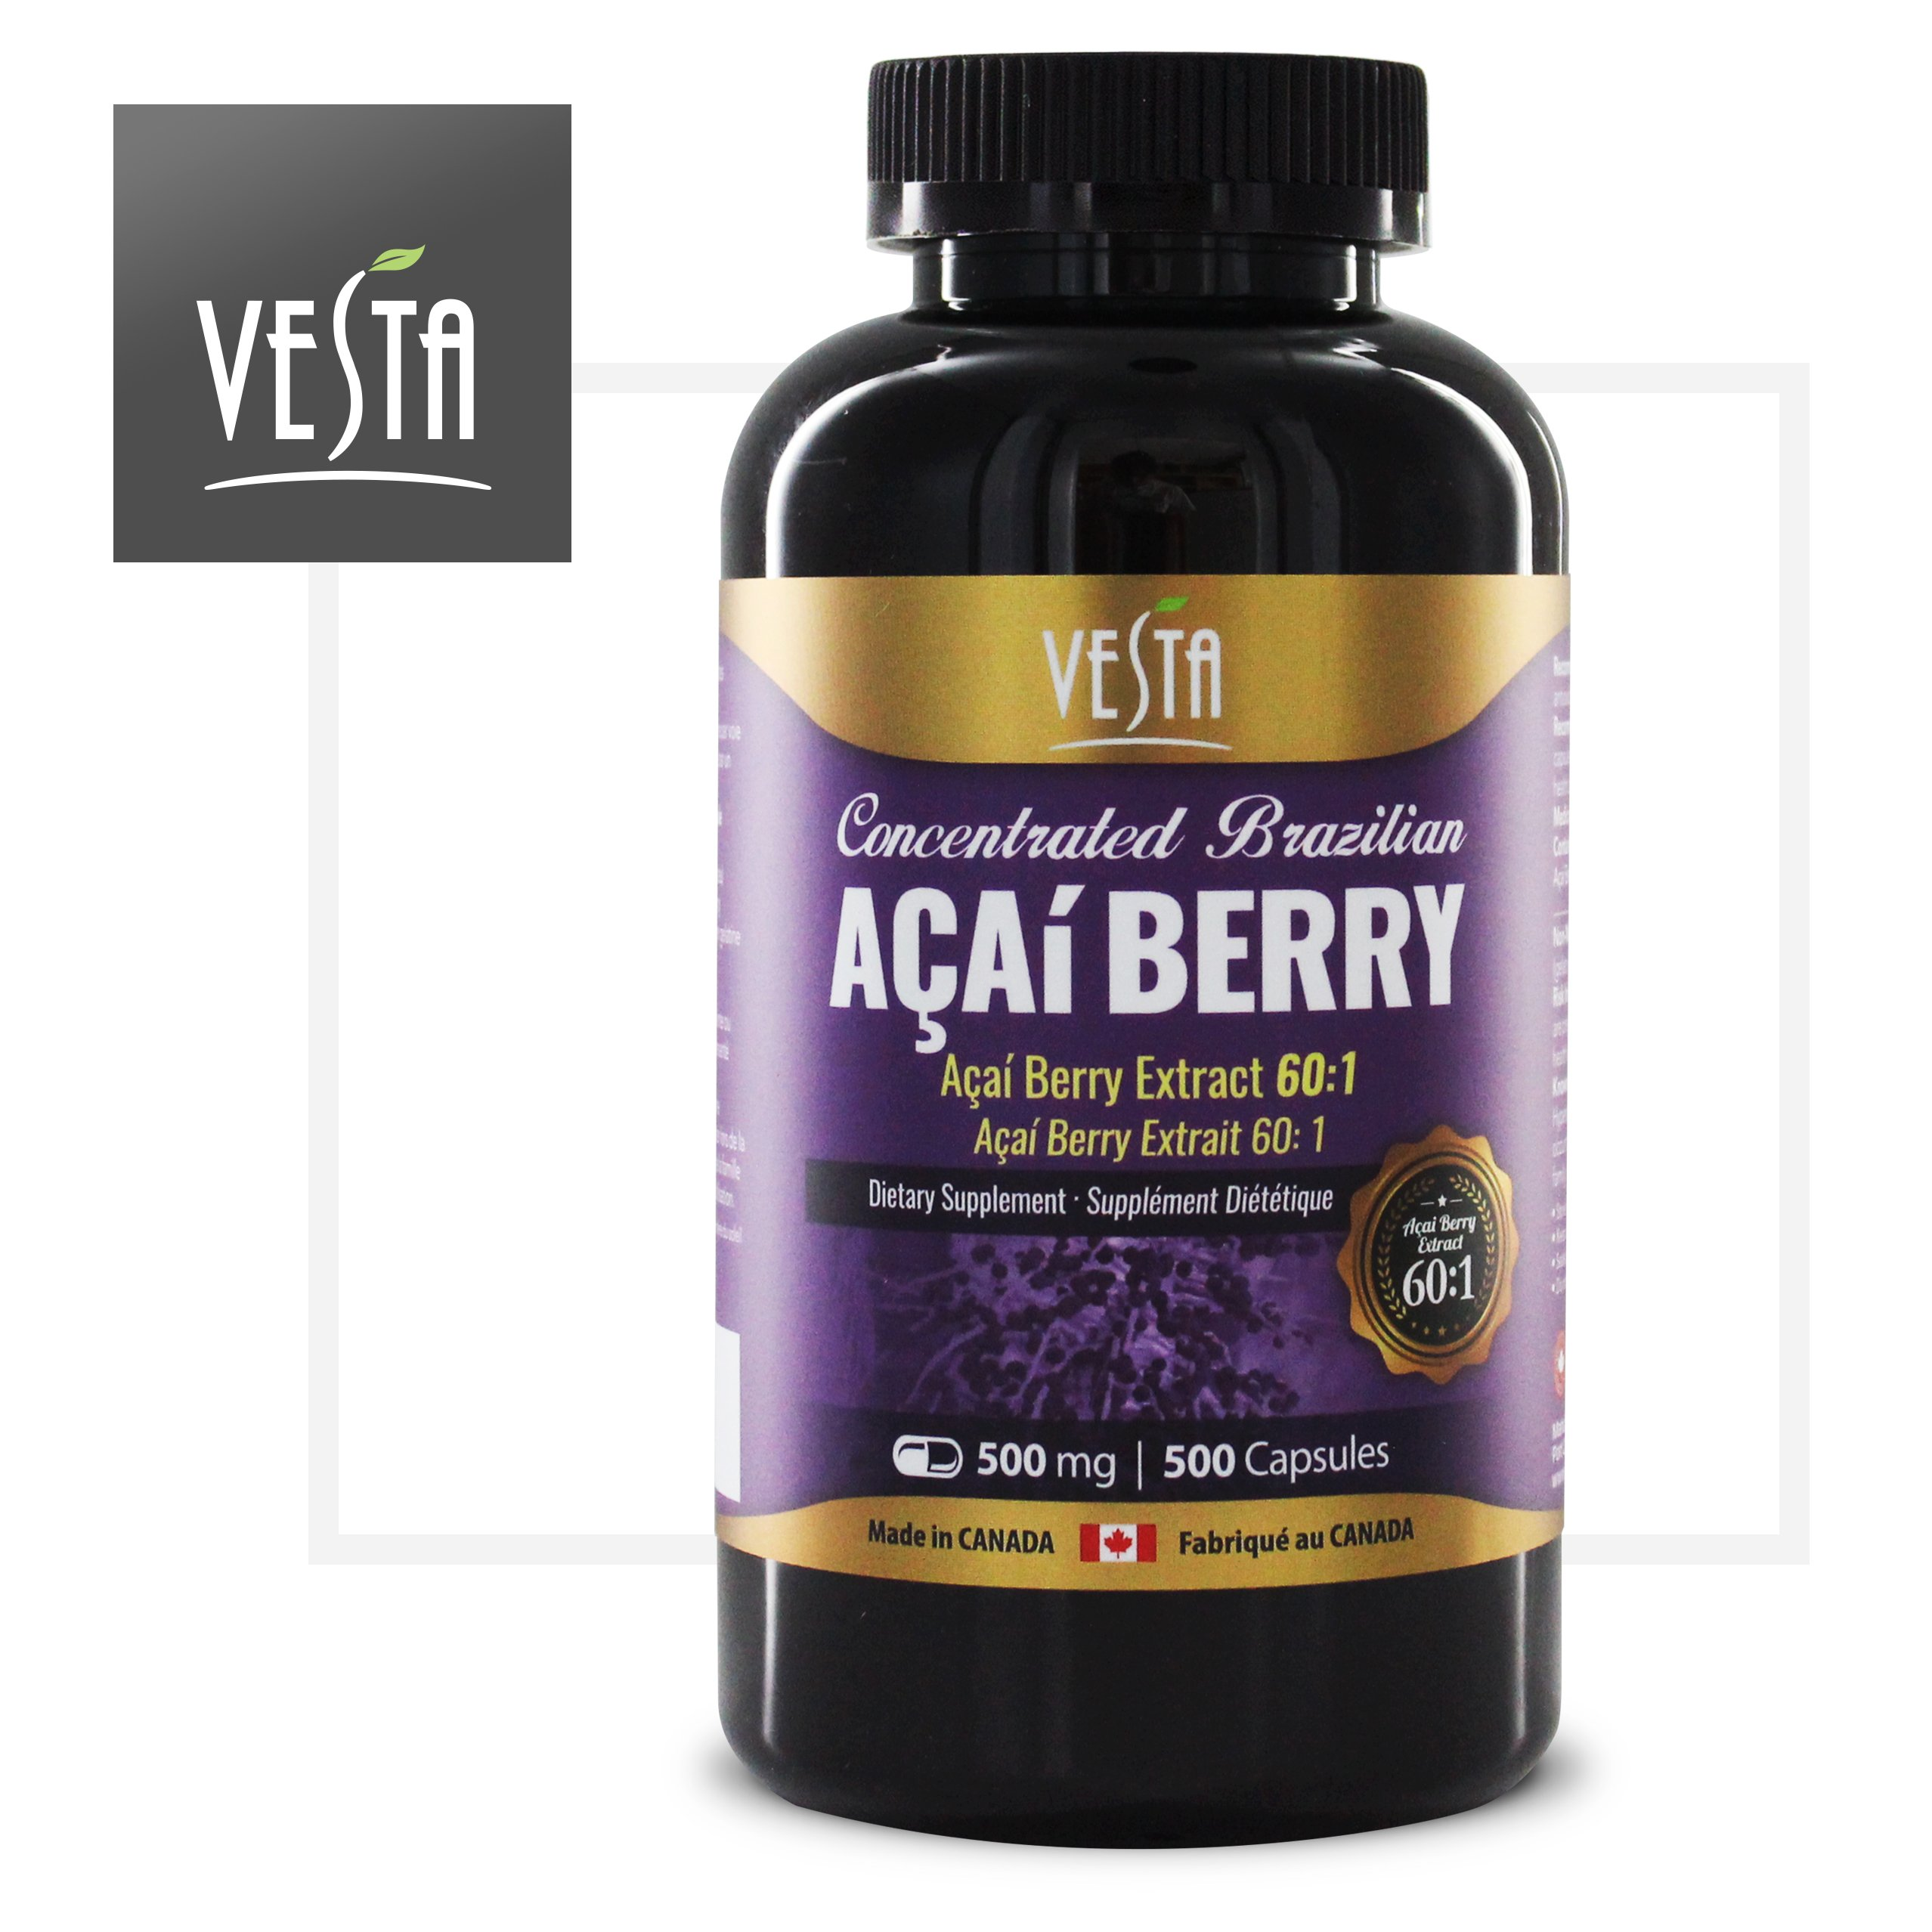 [Vesta] Brazilian Acai Berry 60:1 Extract 500 Capsules, 500mg, Antioxidant, Weight Loss, Detox, Manufactured In Canada